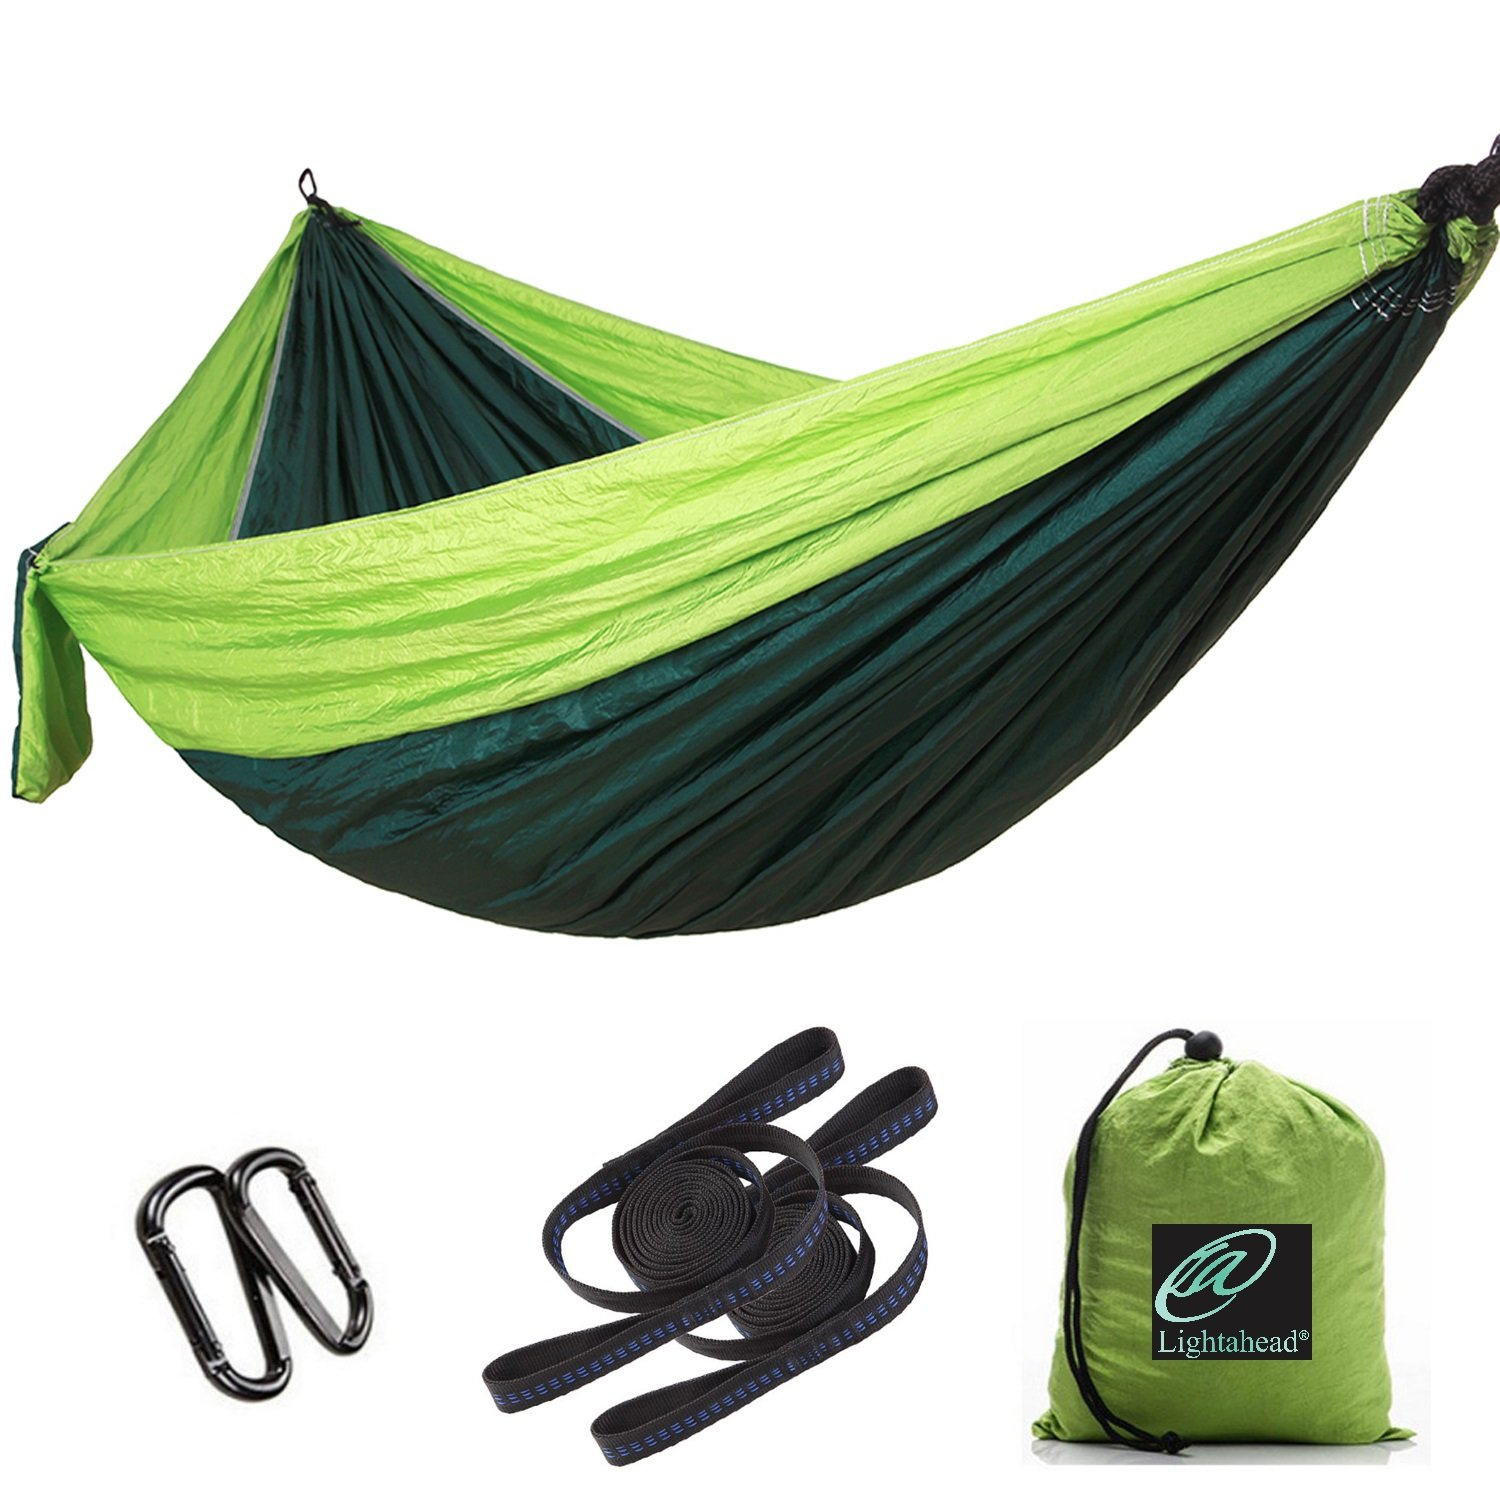 Lightahead Single Double Parachute Portable Camping Hammock Including 2 Straps Carabiners Heavy Duty Lightweight Nylon, Best Parachute Hammock for,Camping, Travel, Beach, Garden.